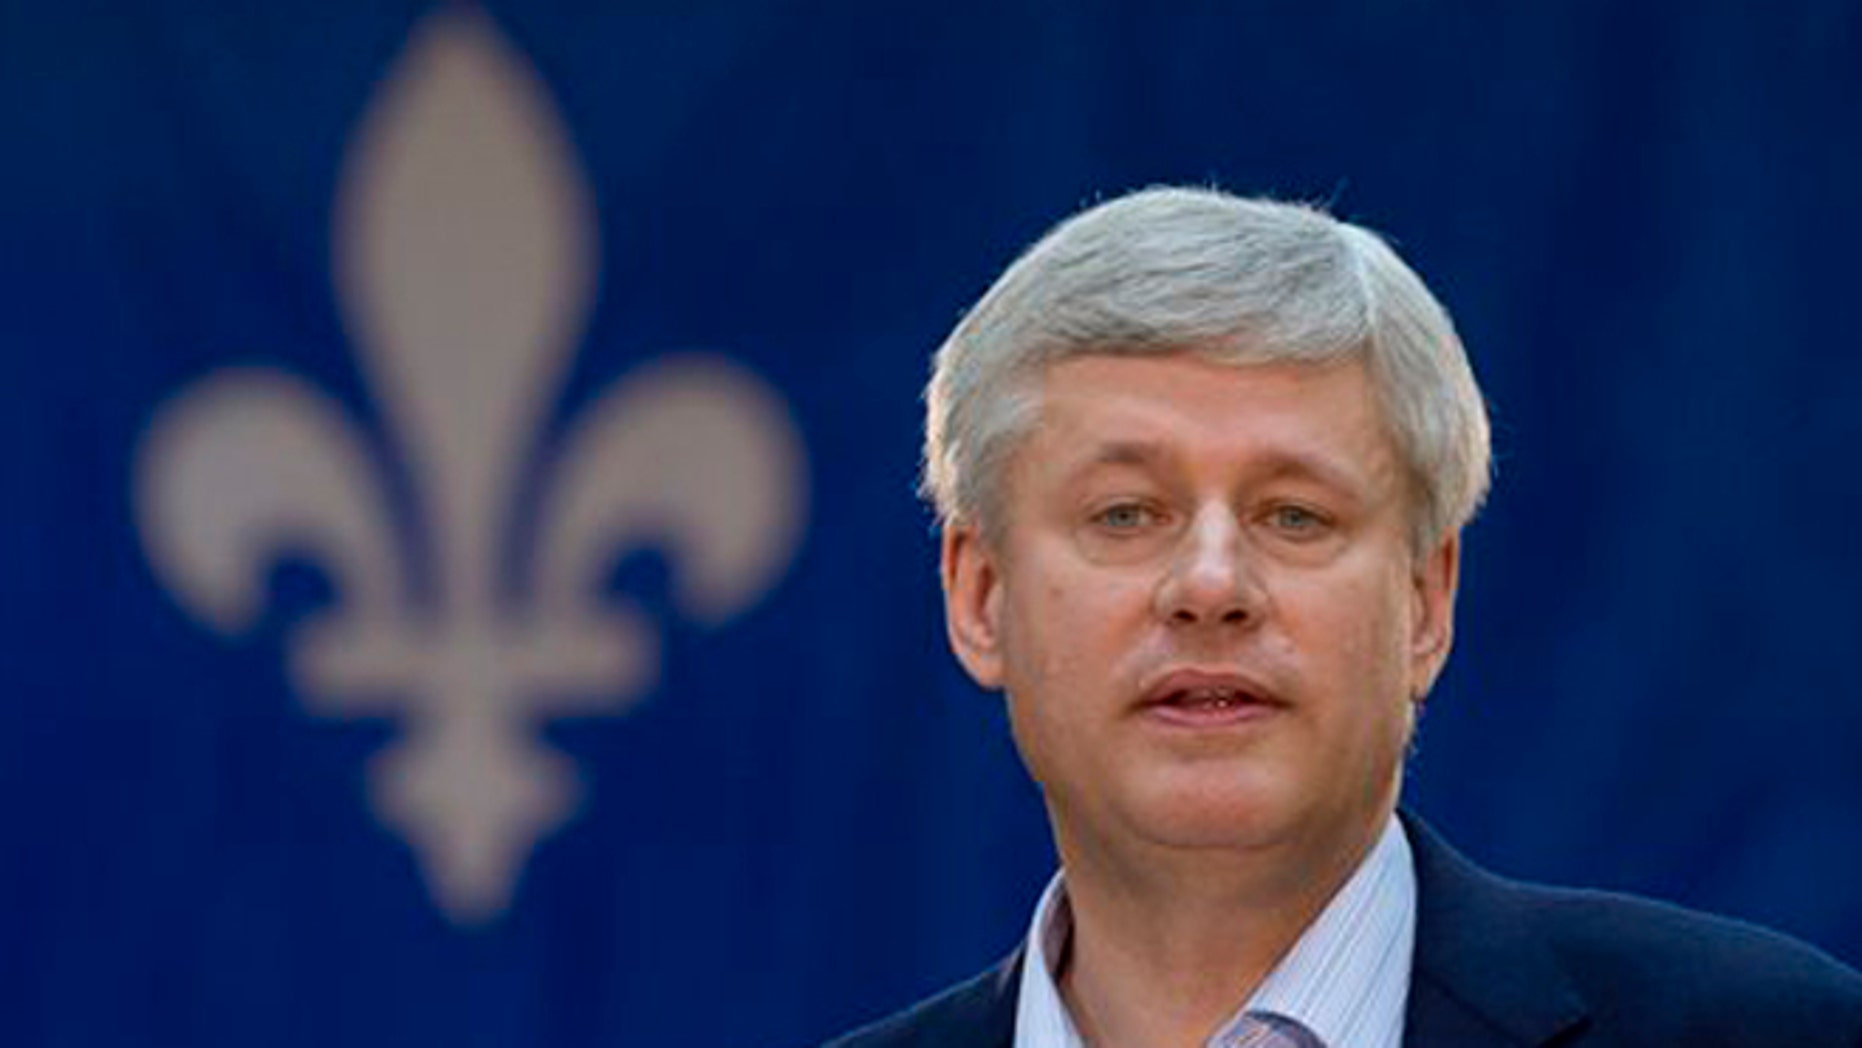 Sept.11, 2015: Conservative Leader Stephen Harper speaks to supporters during a campaign stop in Victoriaville, Quebec, Canada. On Saturday, Sept. 12, 2015, Harper's government announced that Canada will provide $100 million in additional humanitarian assistance for Syrian refugee camps.